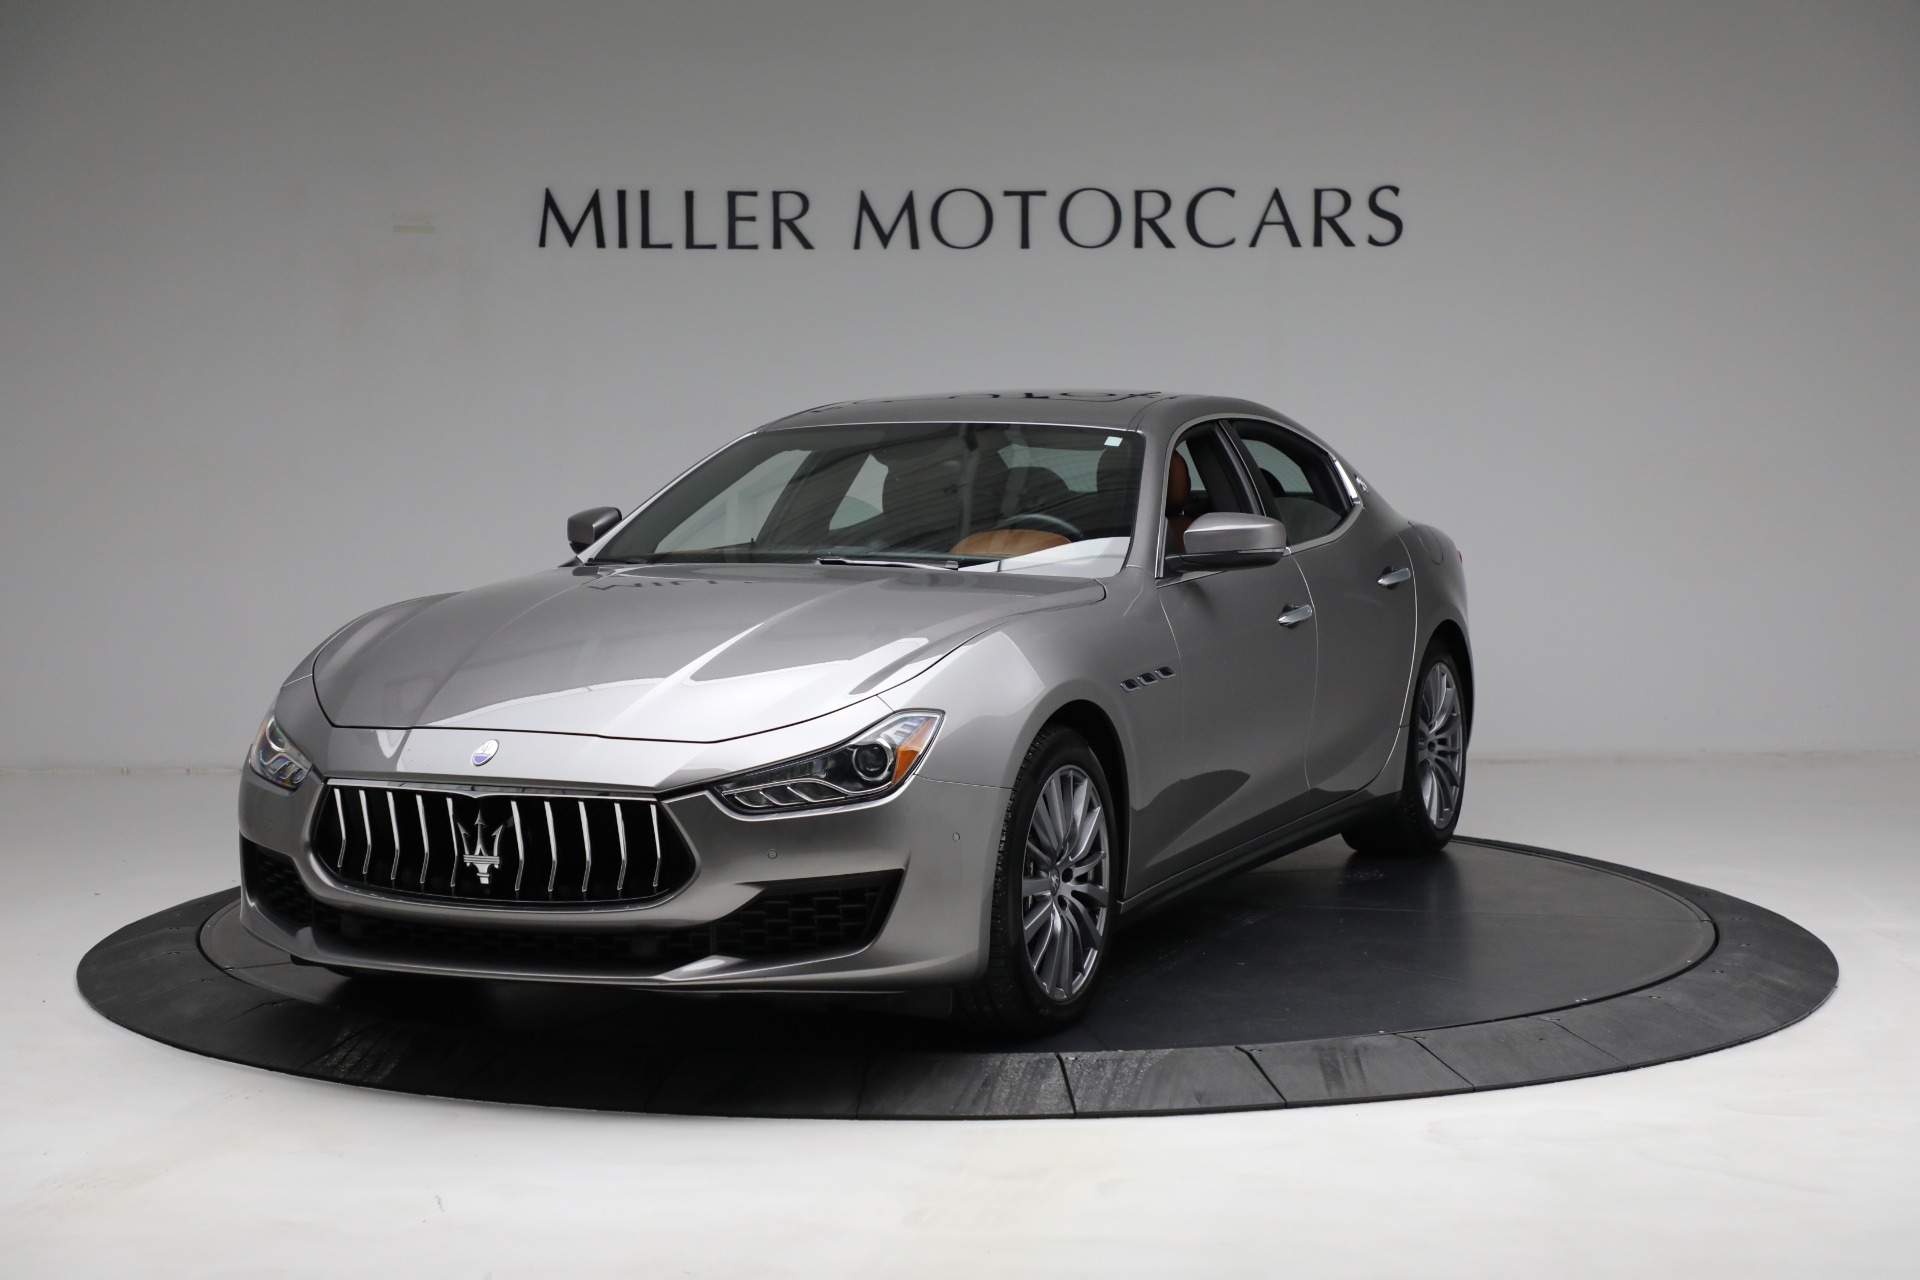 New 2018 Maserati Ghibli S Q4 For Sale In Greenwich, CT 1861_main